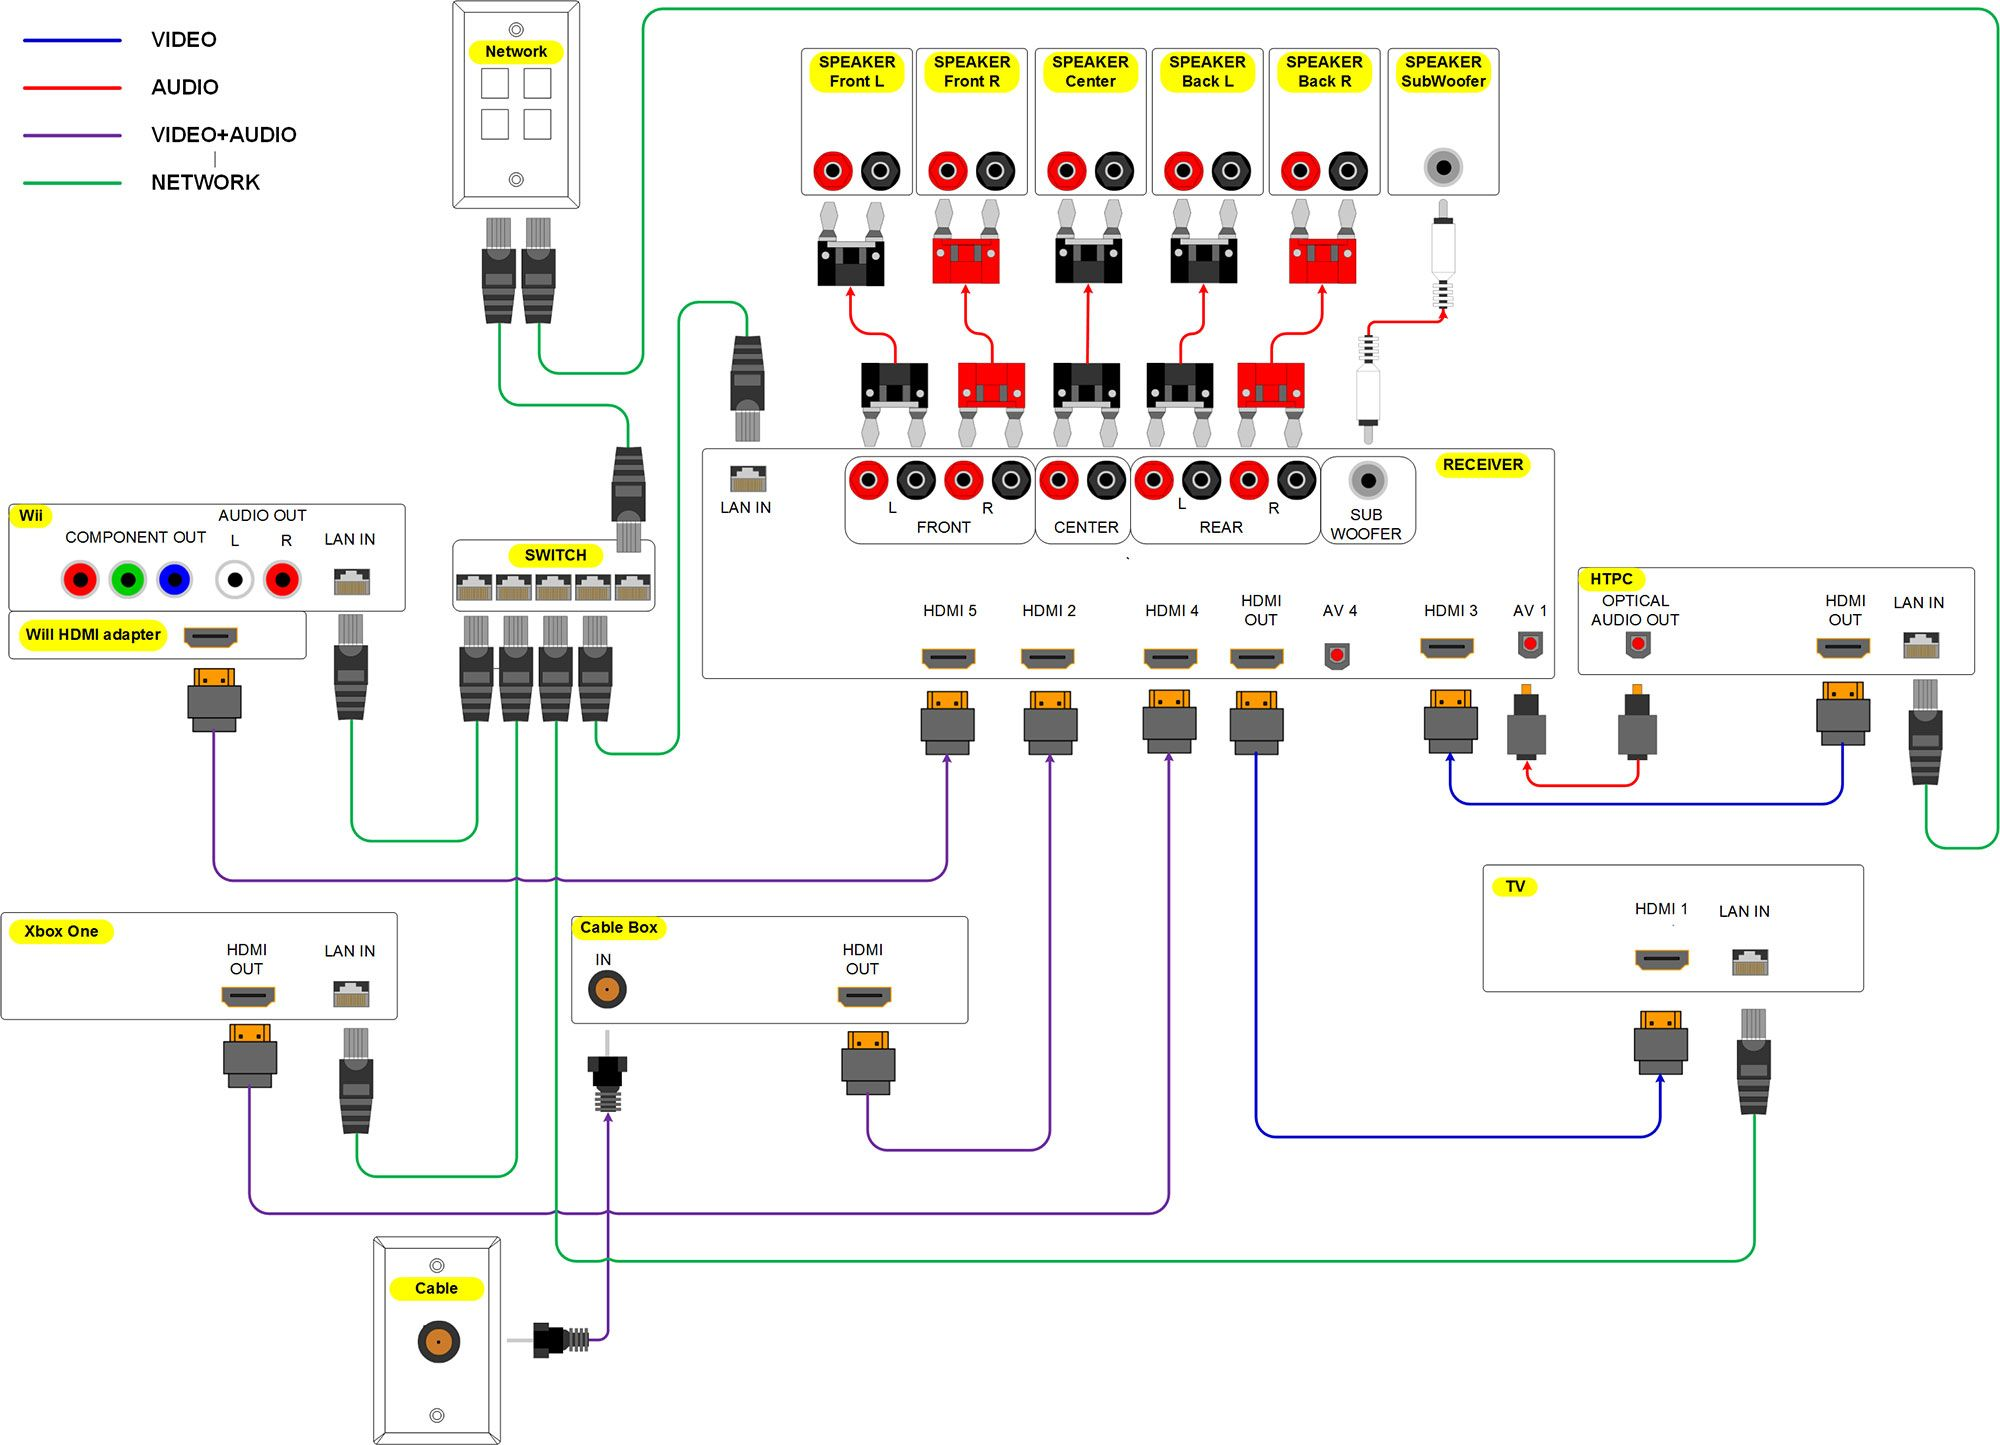 Home Theater Wiring Diagram (click it to see the big 2000 ... on home theater diagrams hdmi, home theater hookup diagrams, home theater wire, home theater dimensions, home theater design, home theater seats, simple home theater diagram, home theater receivers, circuit diagram, home theater switch, home theater connections, home theater connector, home theater furniture, home theater lighting, home theater guide, home theater speakers diagram, home theater tools, home theater chairs, home theater drawings, home theater setup diagram,